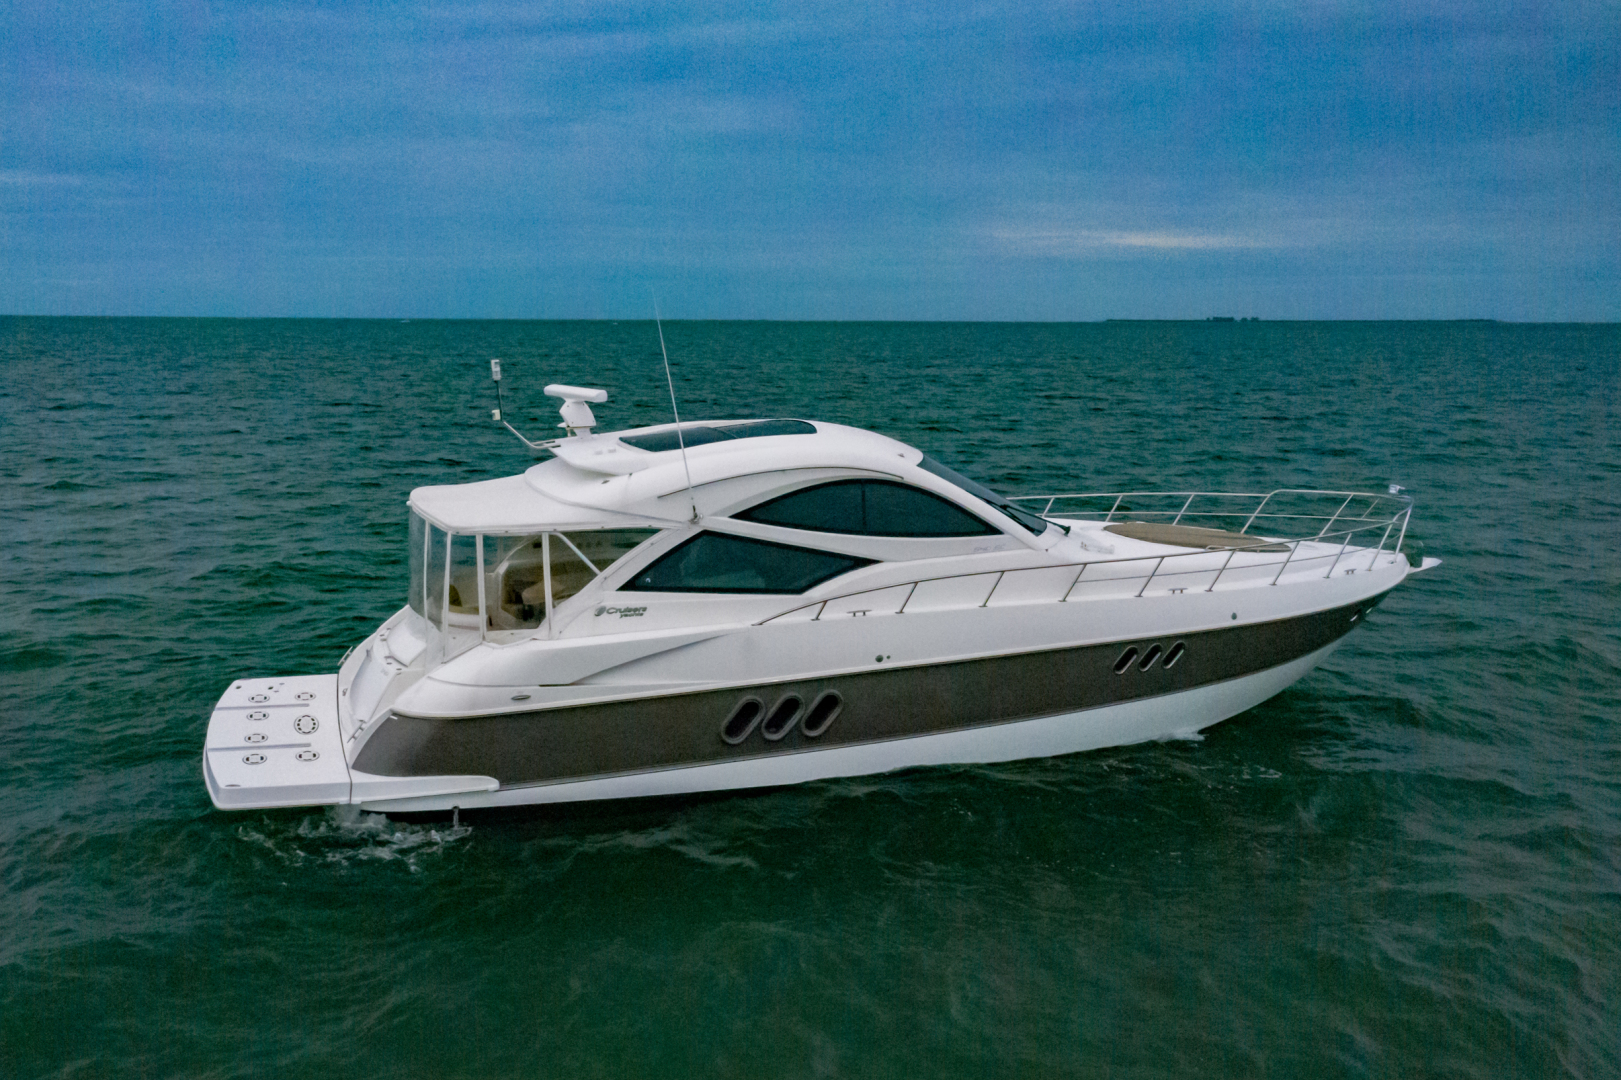 Cruisers-540 Coupe 2014-Galati Yacht Sales Trade Destin-Florida-United States-2014 Cruisers 540 Coupe-1417874 | Thumbnail